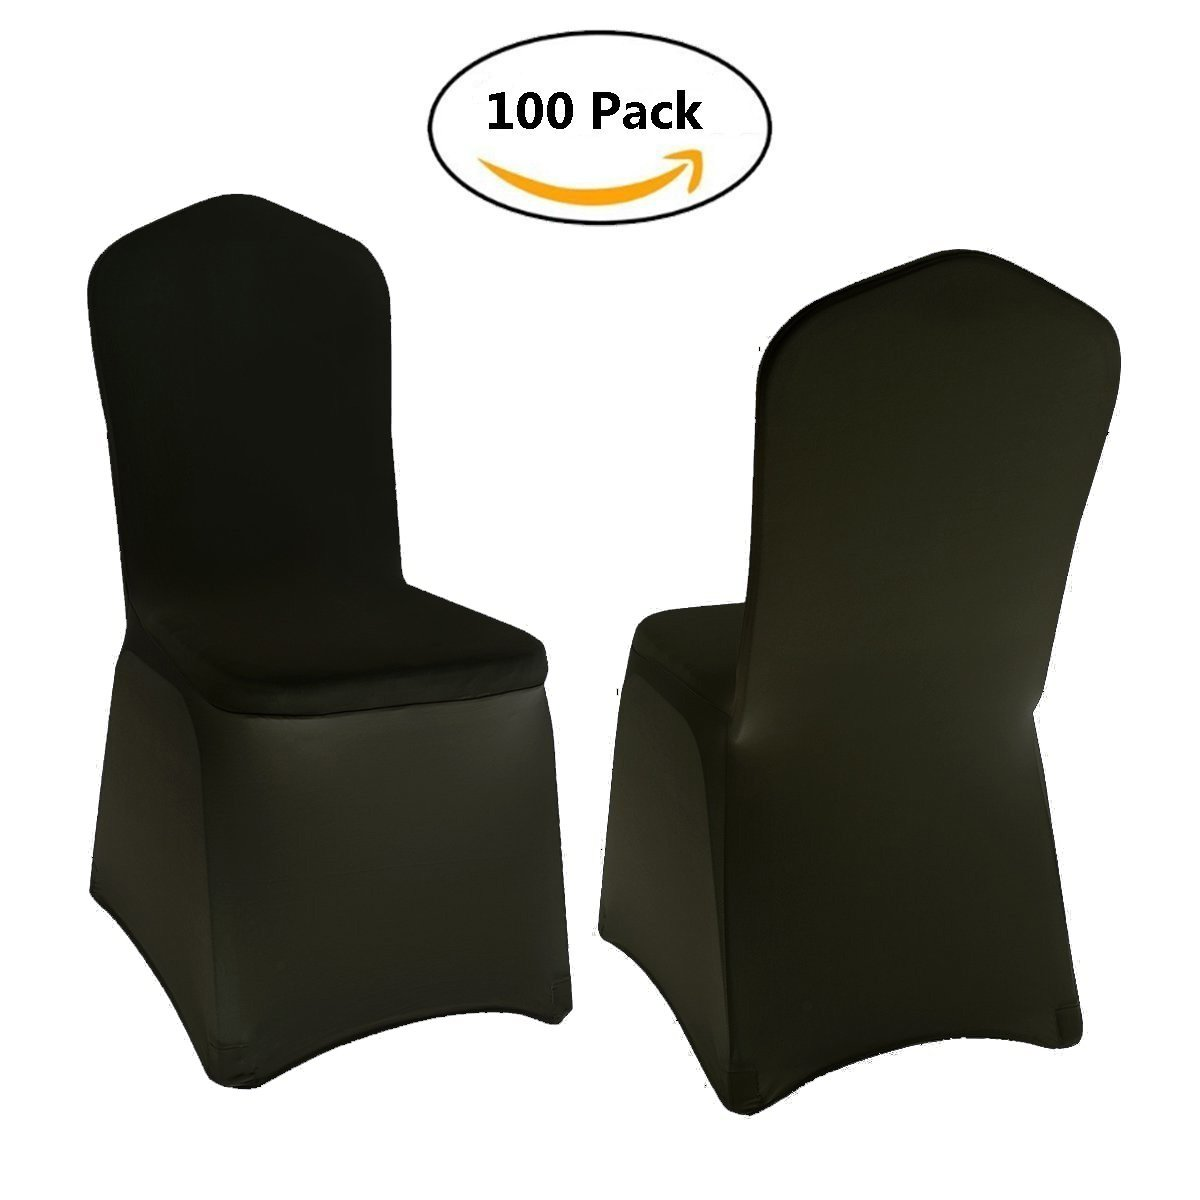 Stretch Polyester Spandex Dining Chair Cover Including 4 x Elasticated & Rugged Pockets for Wedding or Party Use